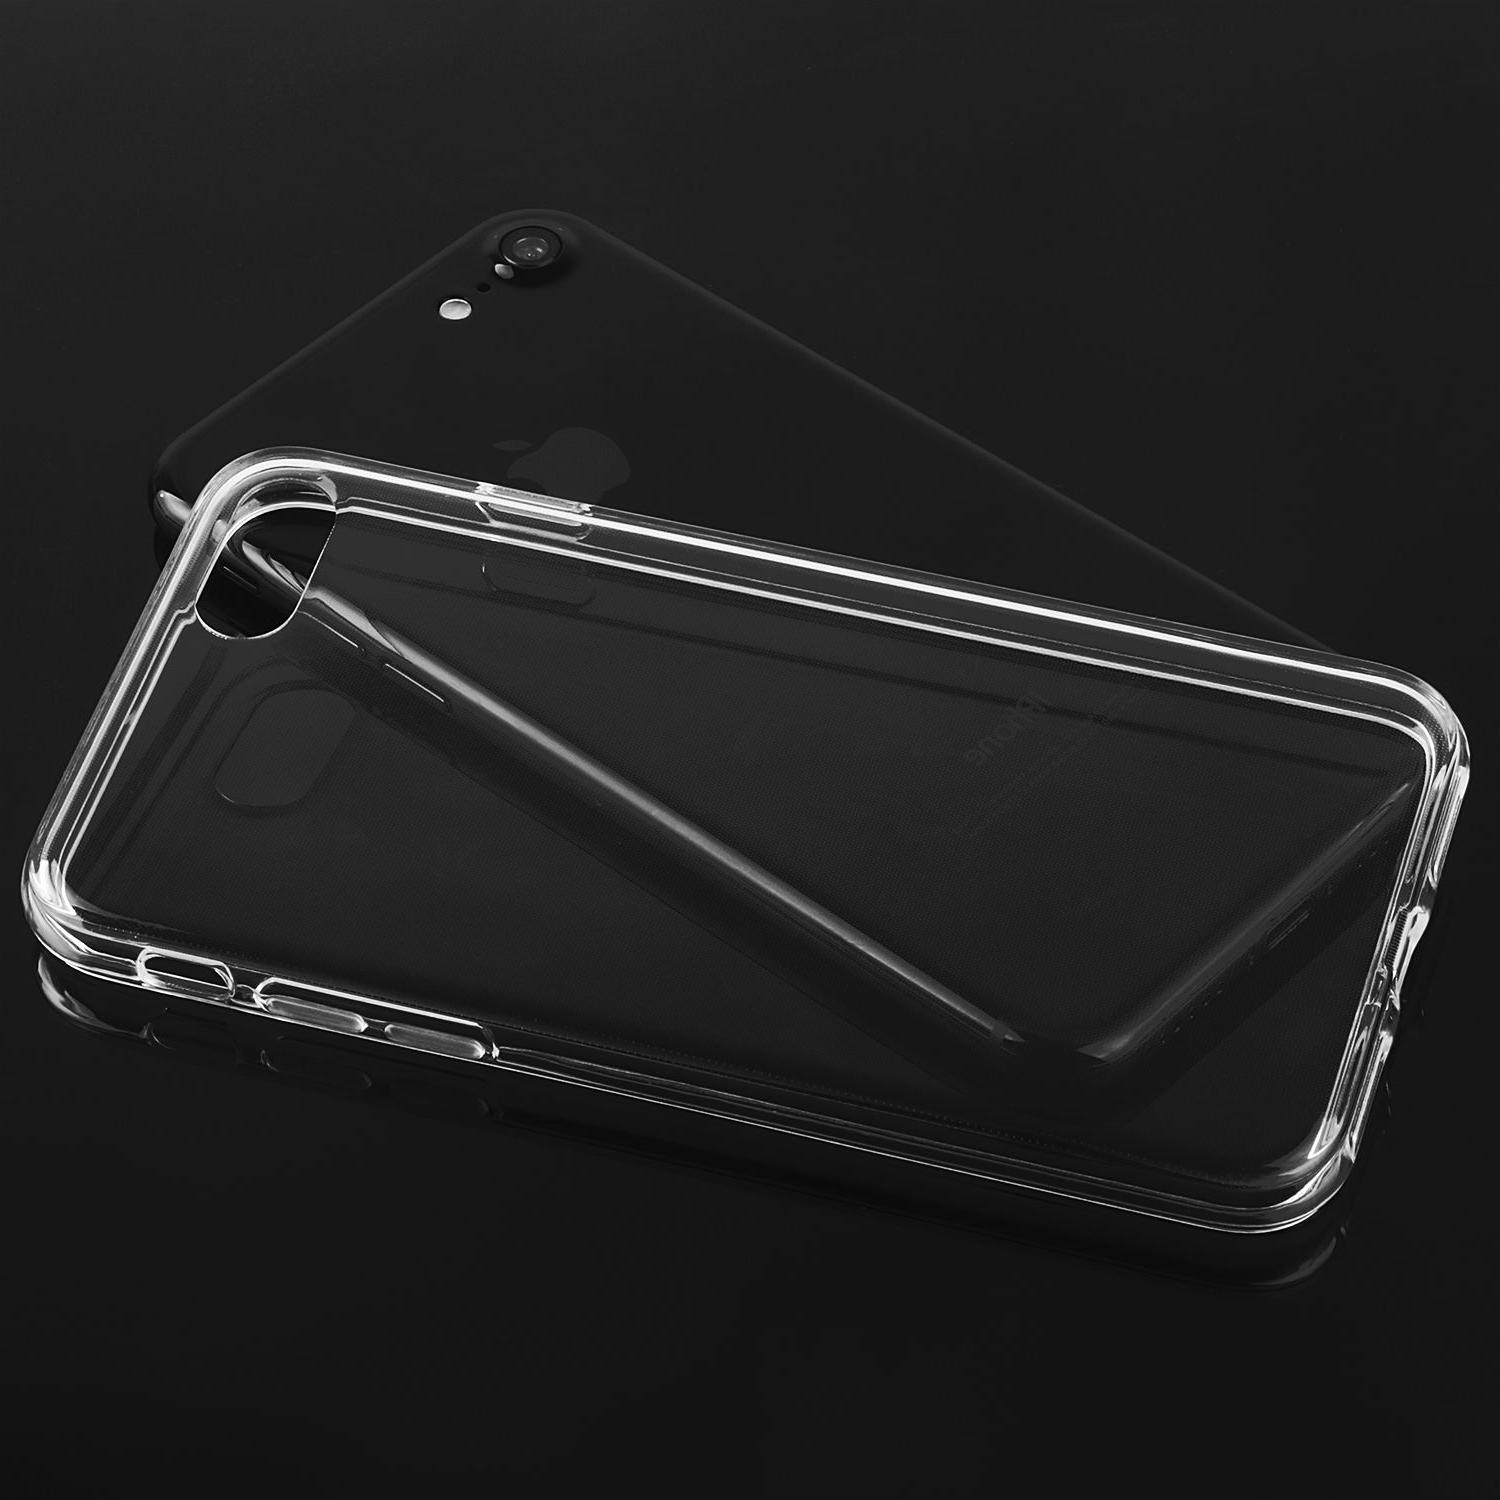 8 Clear Hybrid Shockproof Bumper Cover